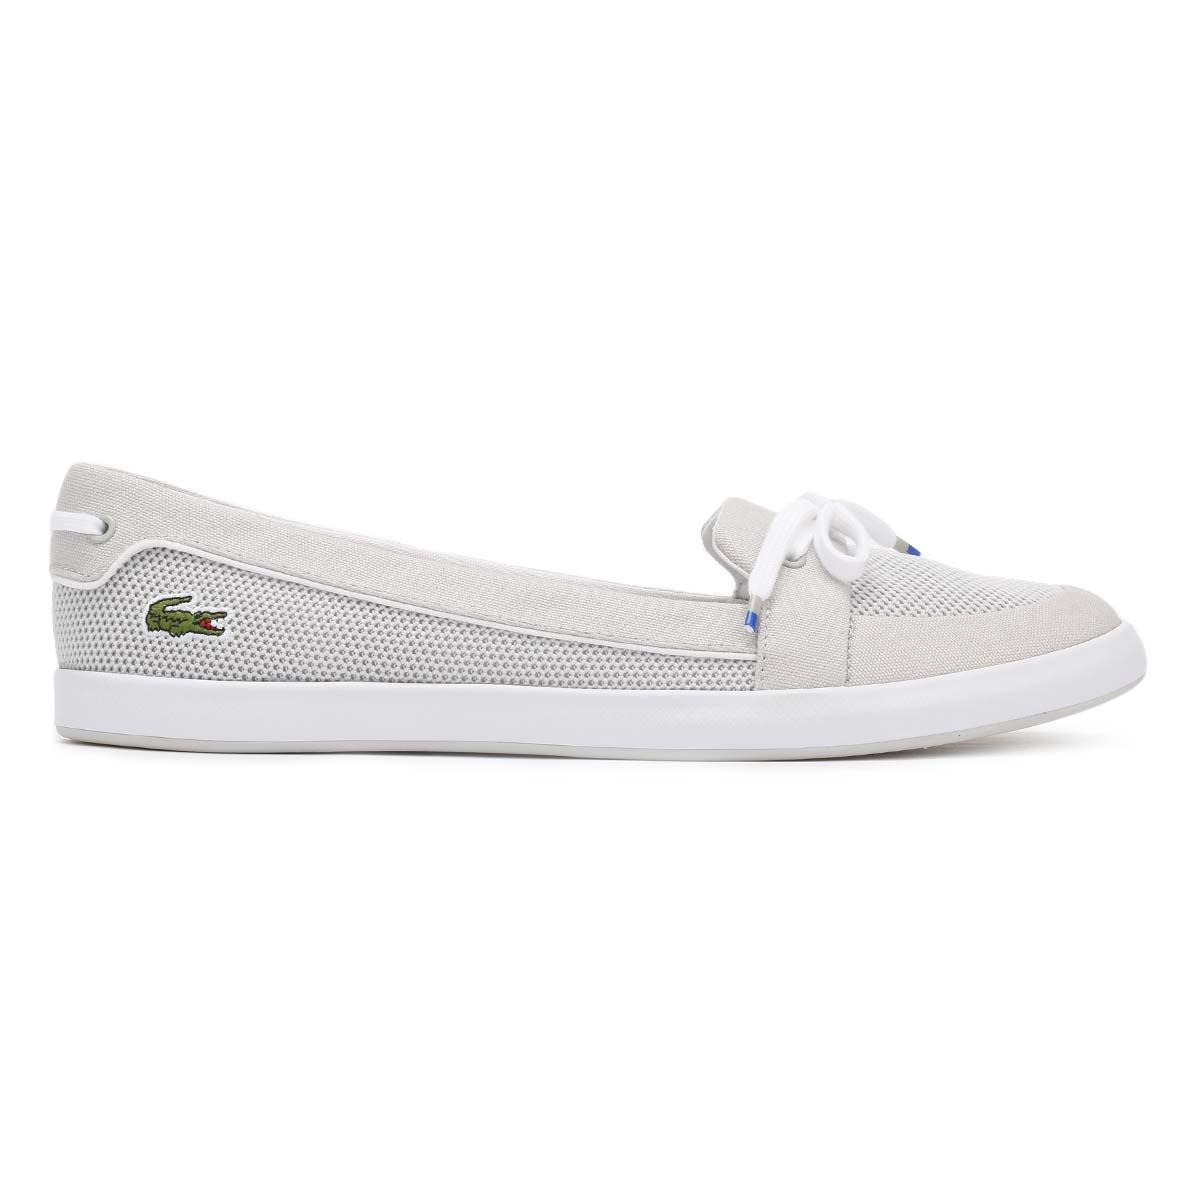 c1907d65e Lyst - Lacoste Womens Light Grey Lancelle Boat 117 1 Caw Shoes in Gray